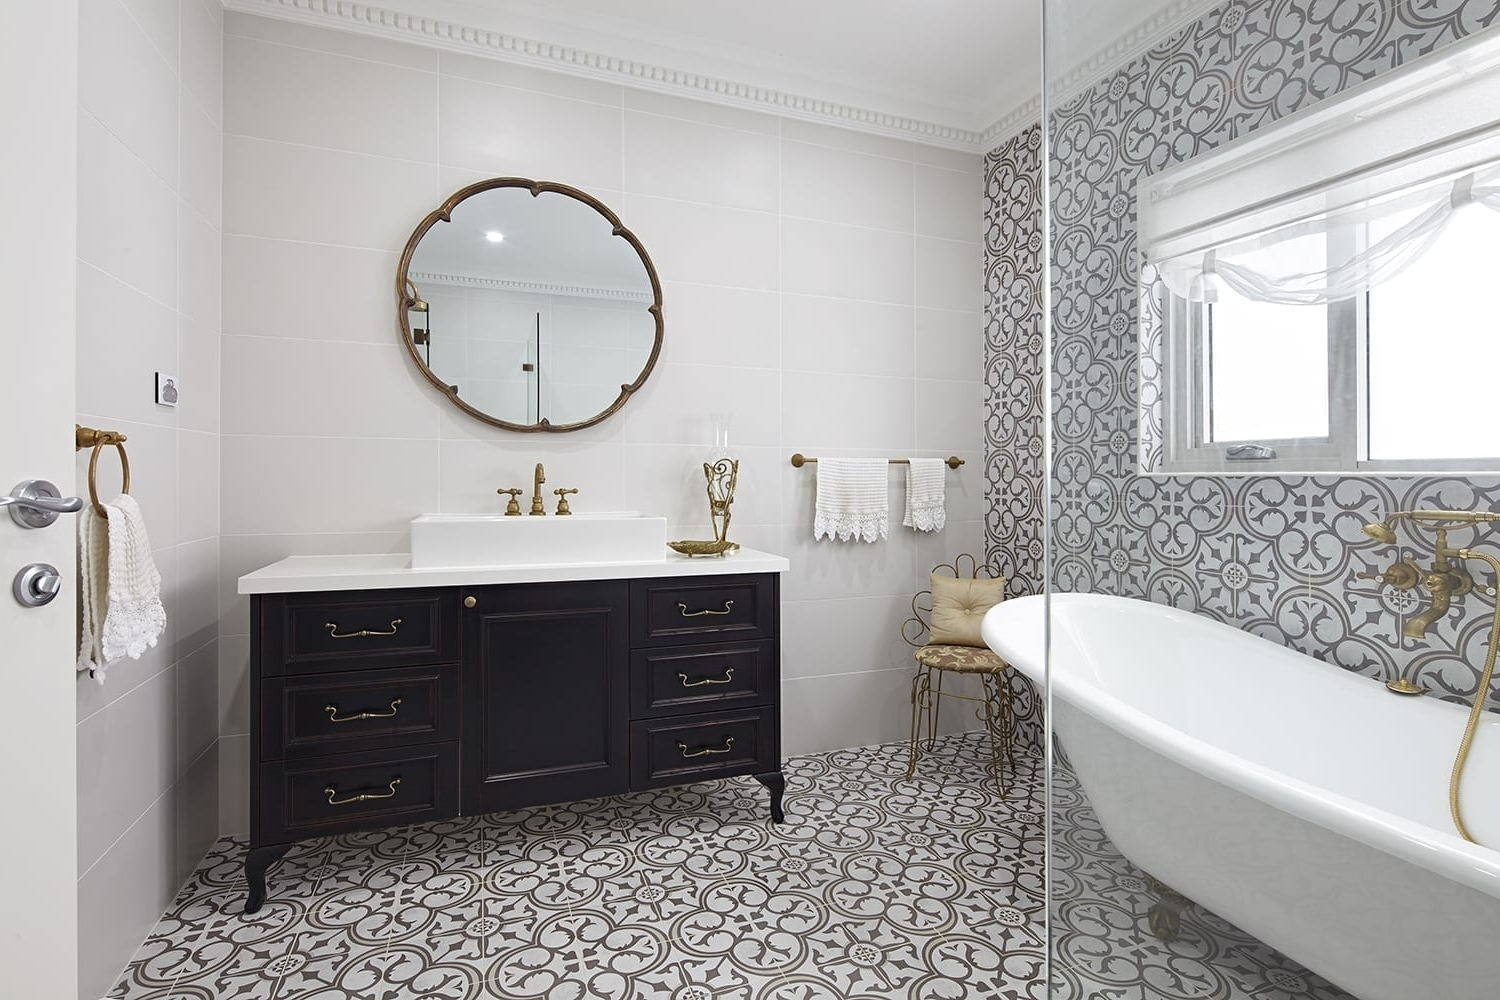 35+ French Provincial Bathroom Ideas And Designs Provincial Bathroom Design